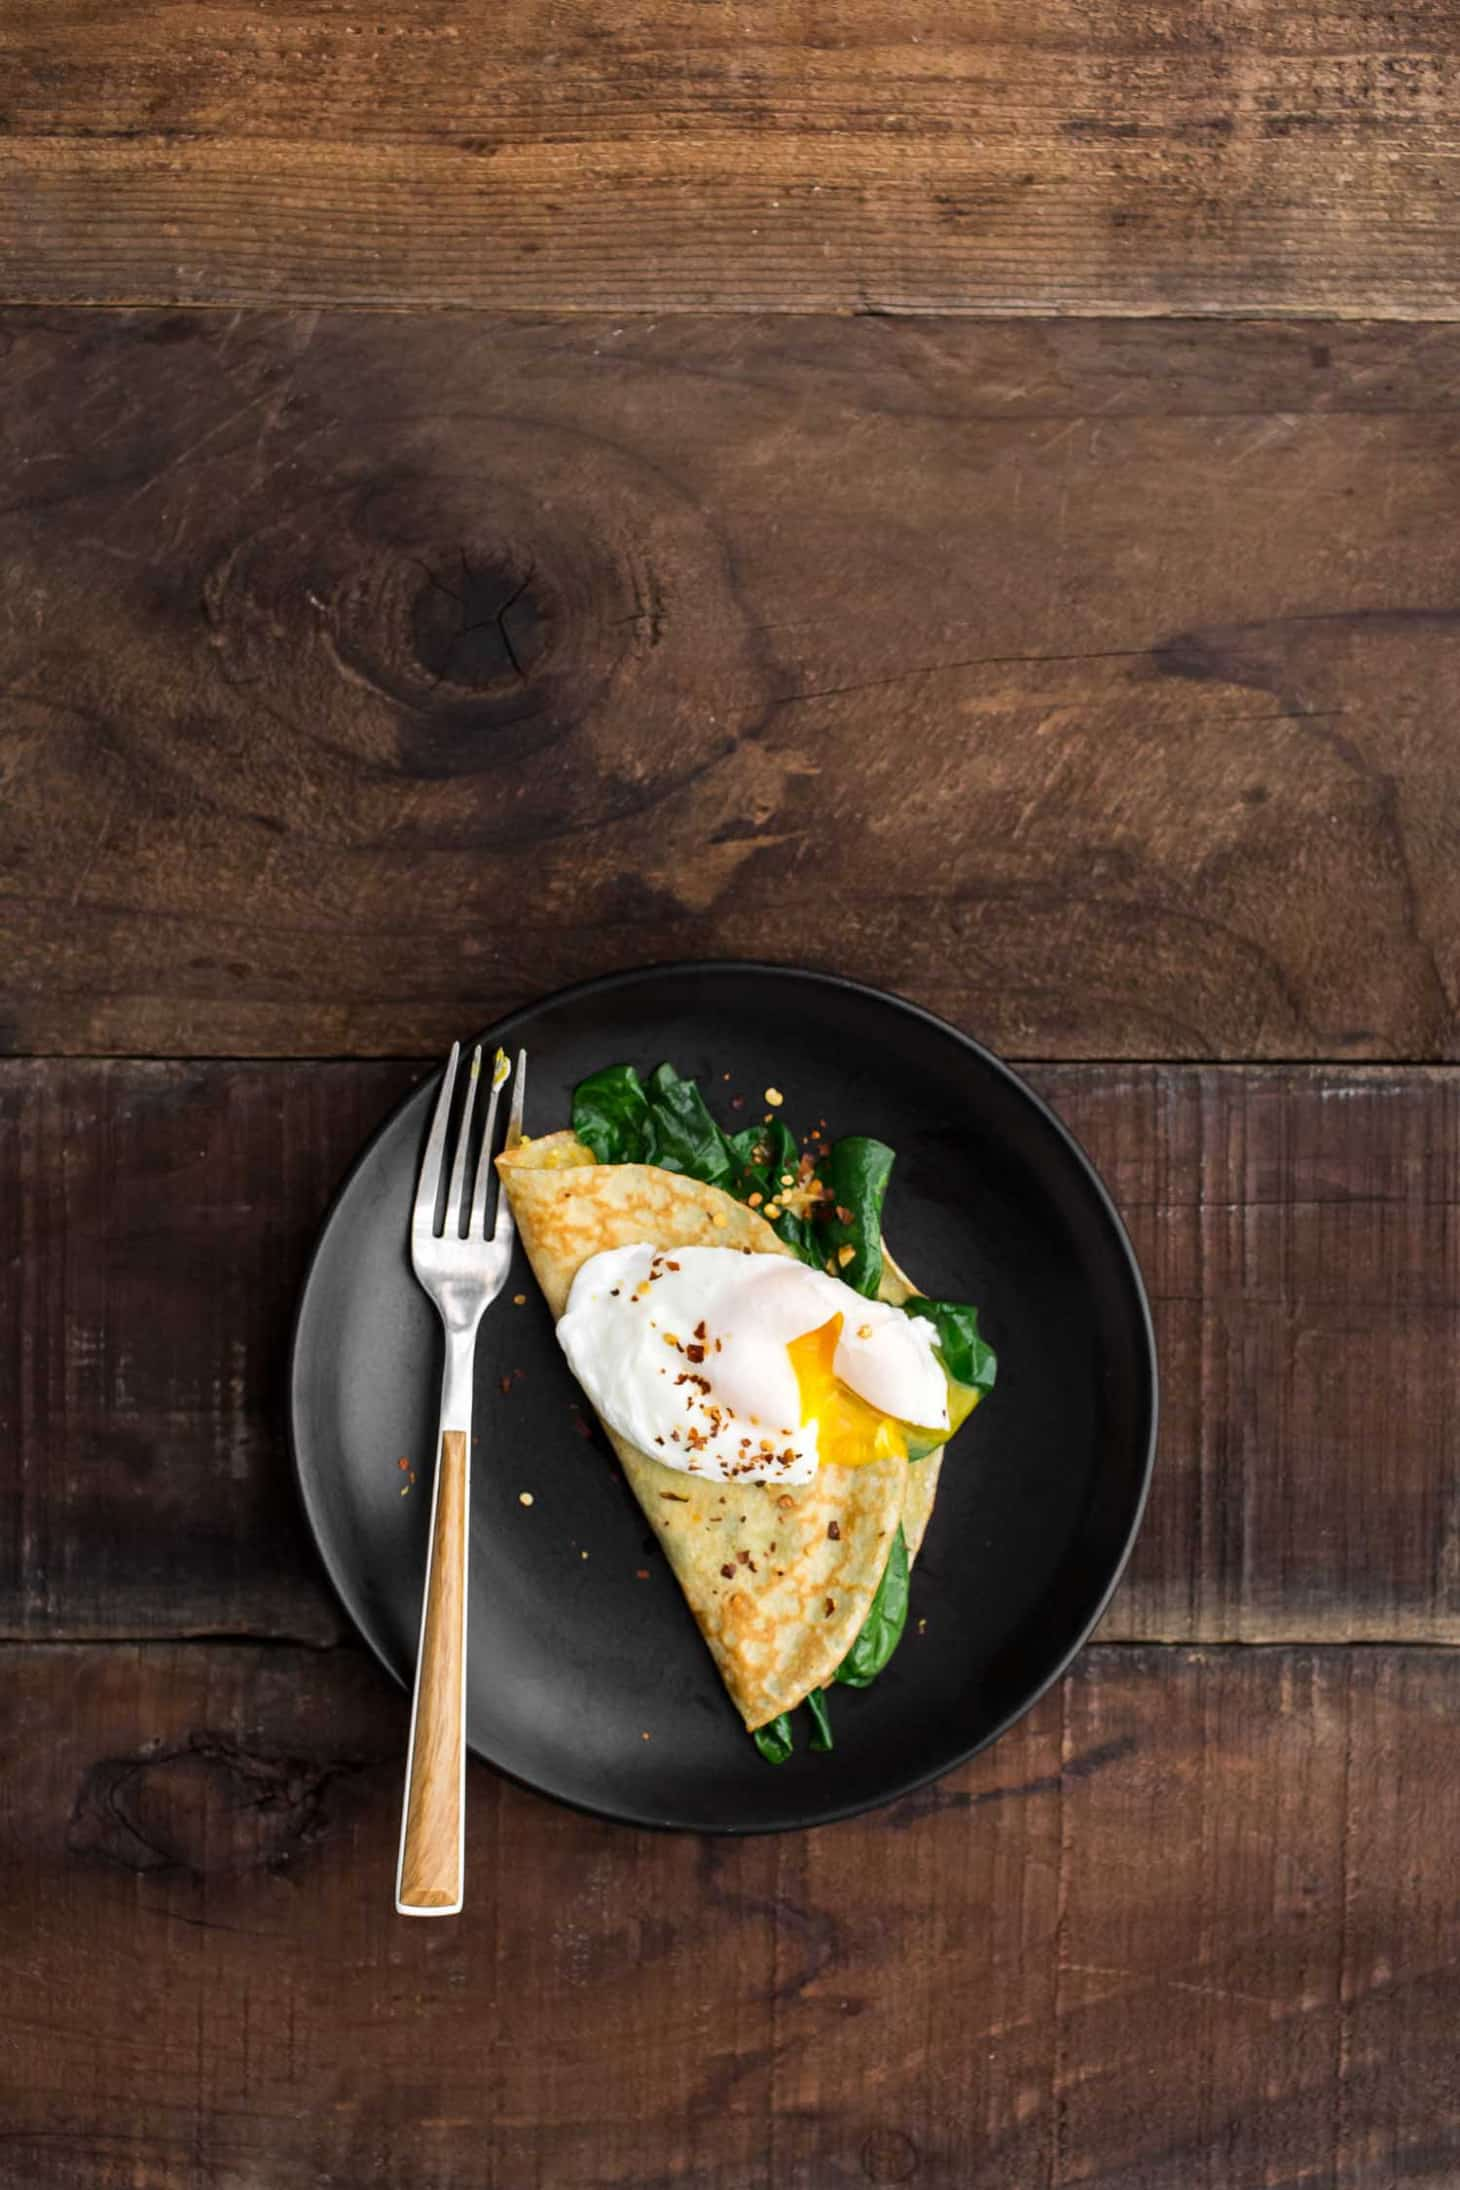 Garlicky Spinach Cornmeal Crepes with Poached Egg | Naturally Ella